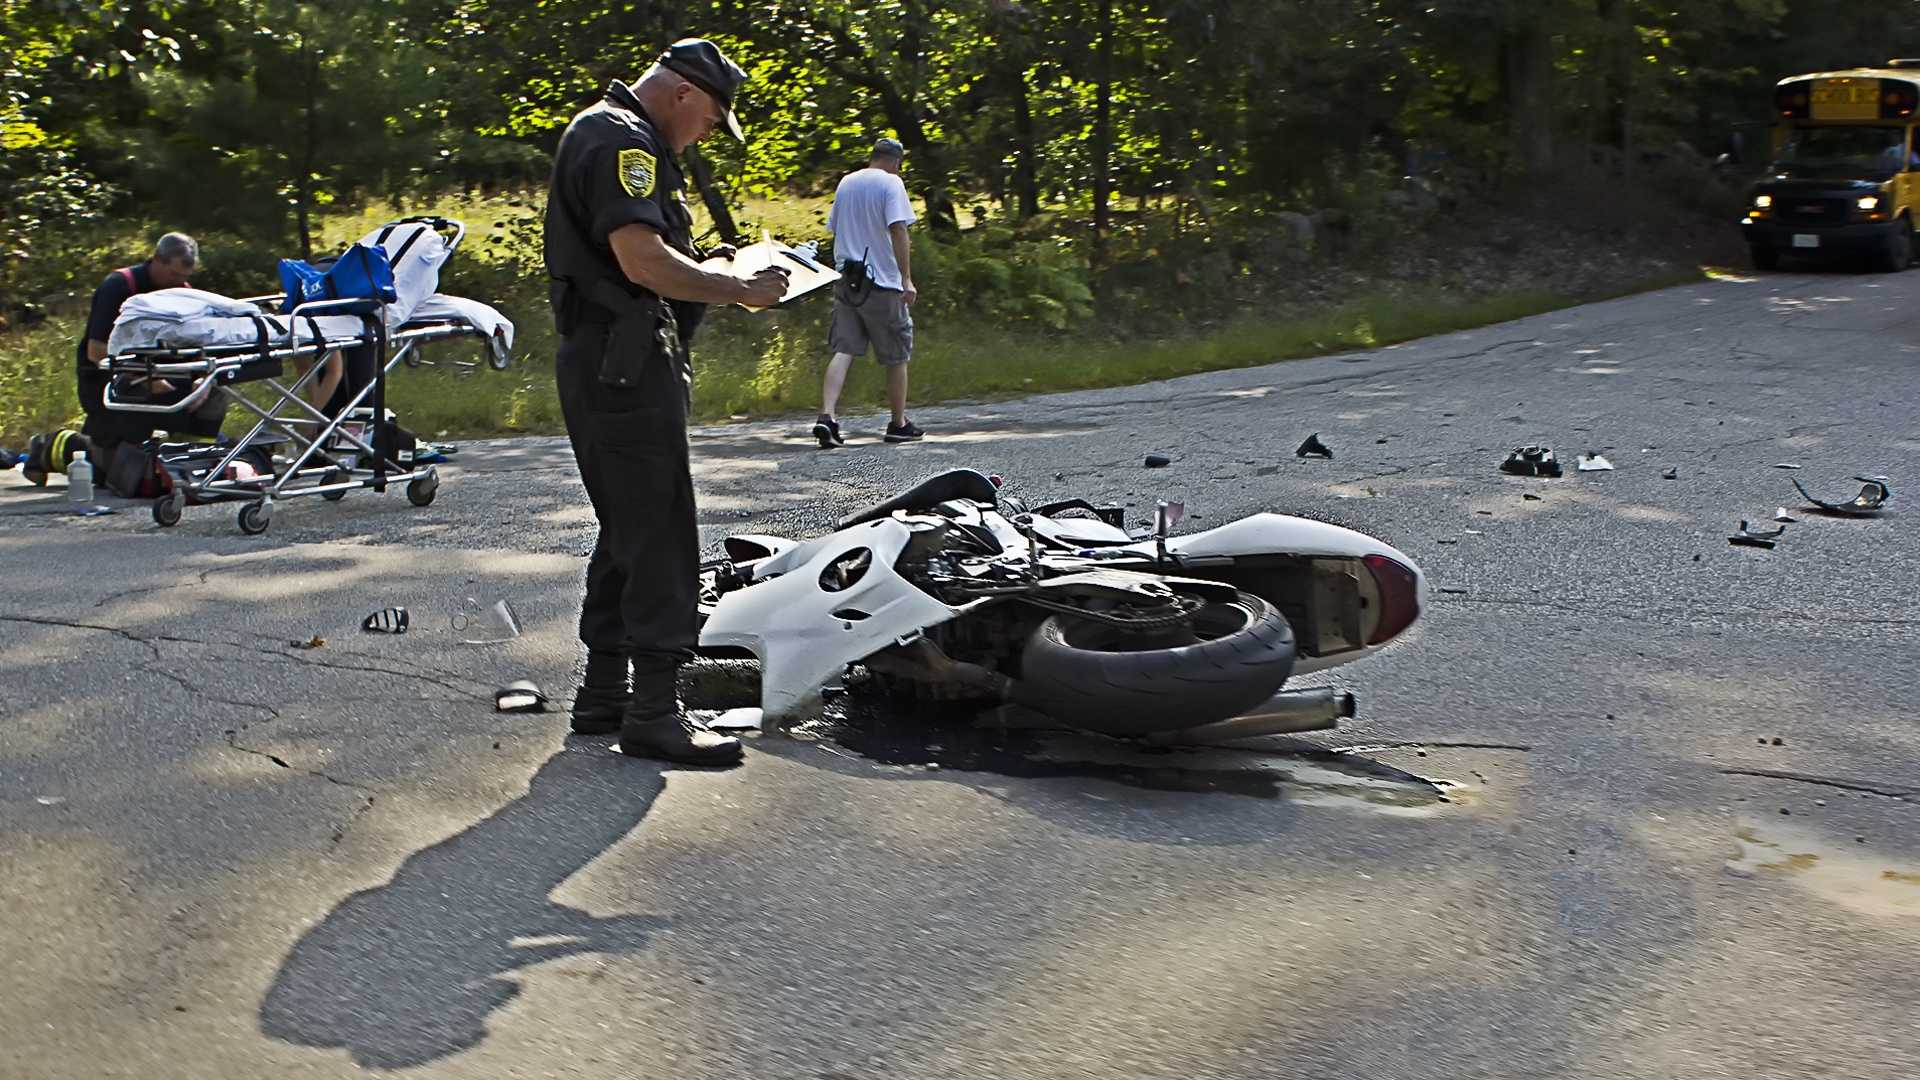 Motorcycle collides with school bus in Hampstead